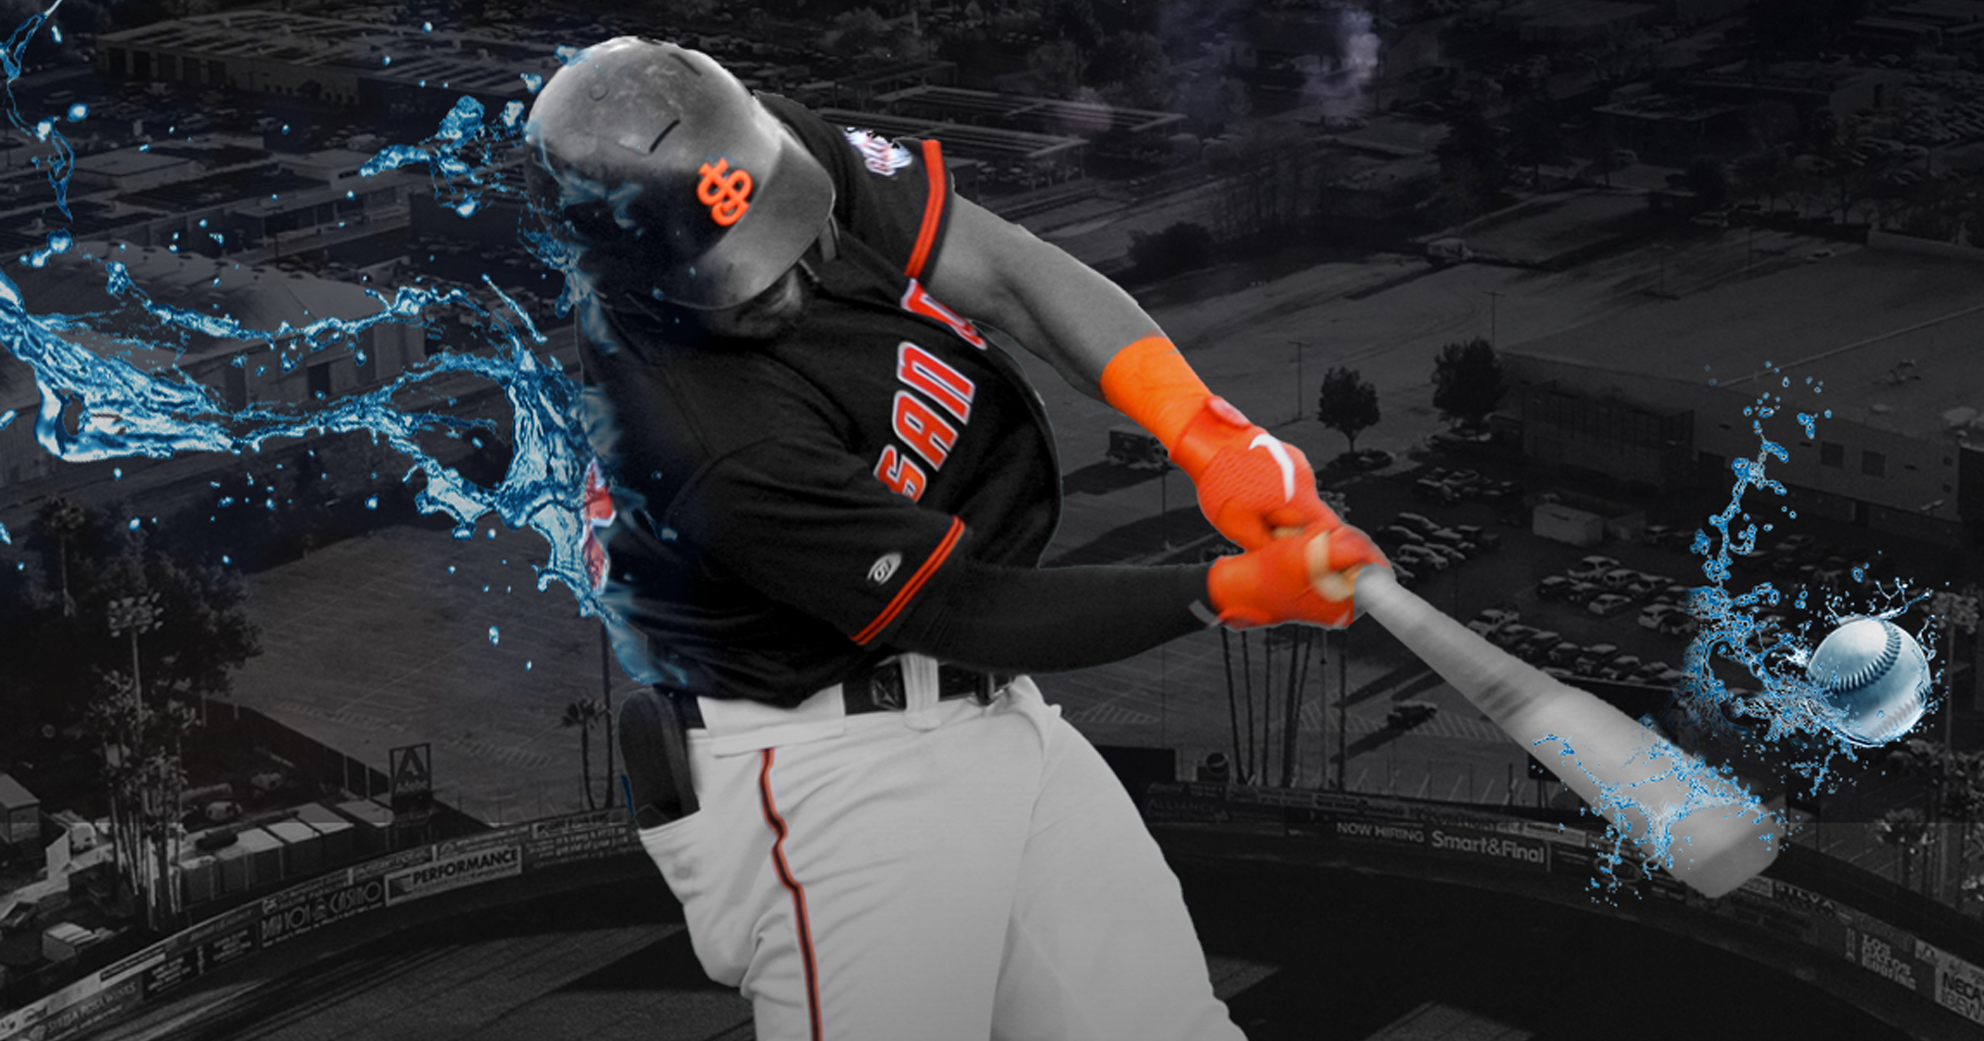 A SF Giants player hitting a baseball with a bat with a water splash effect.